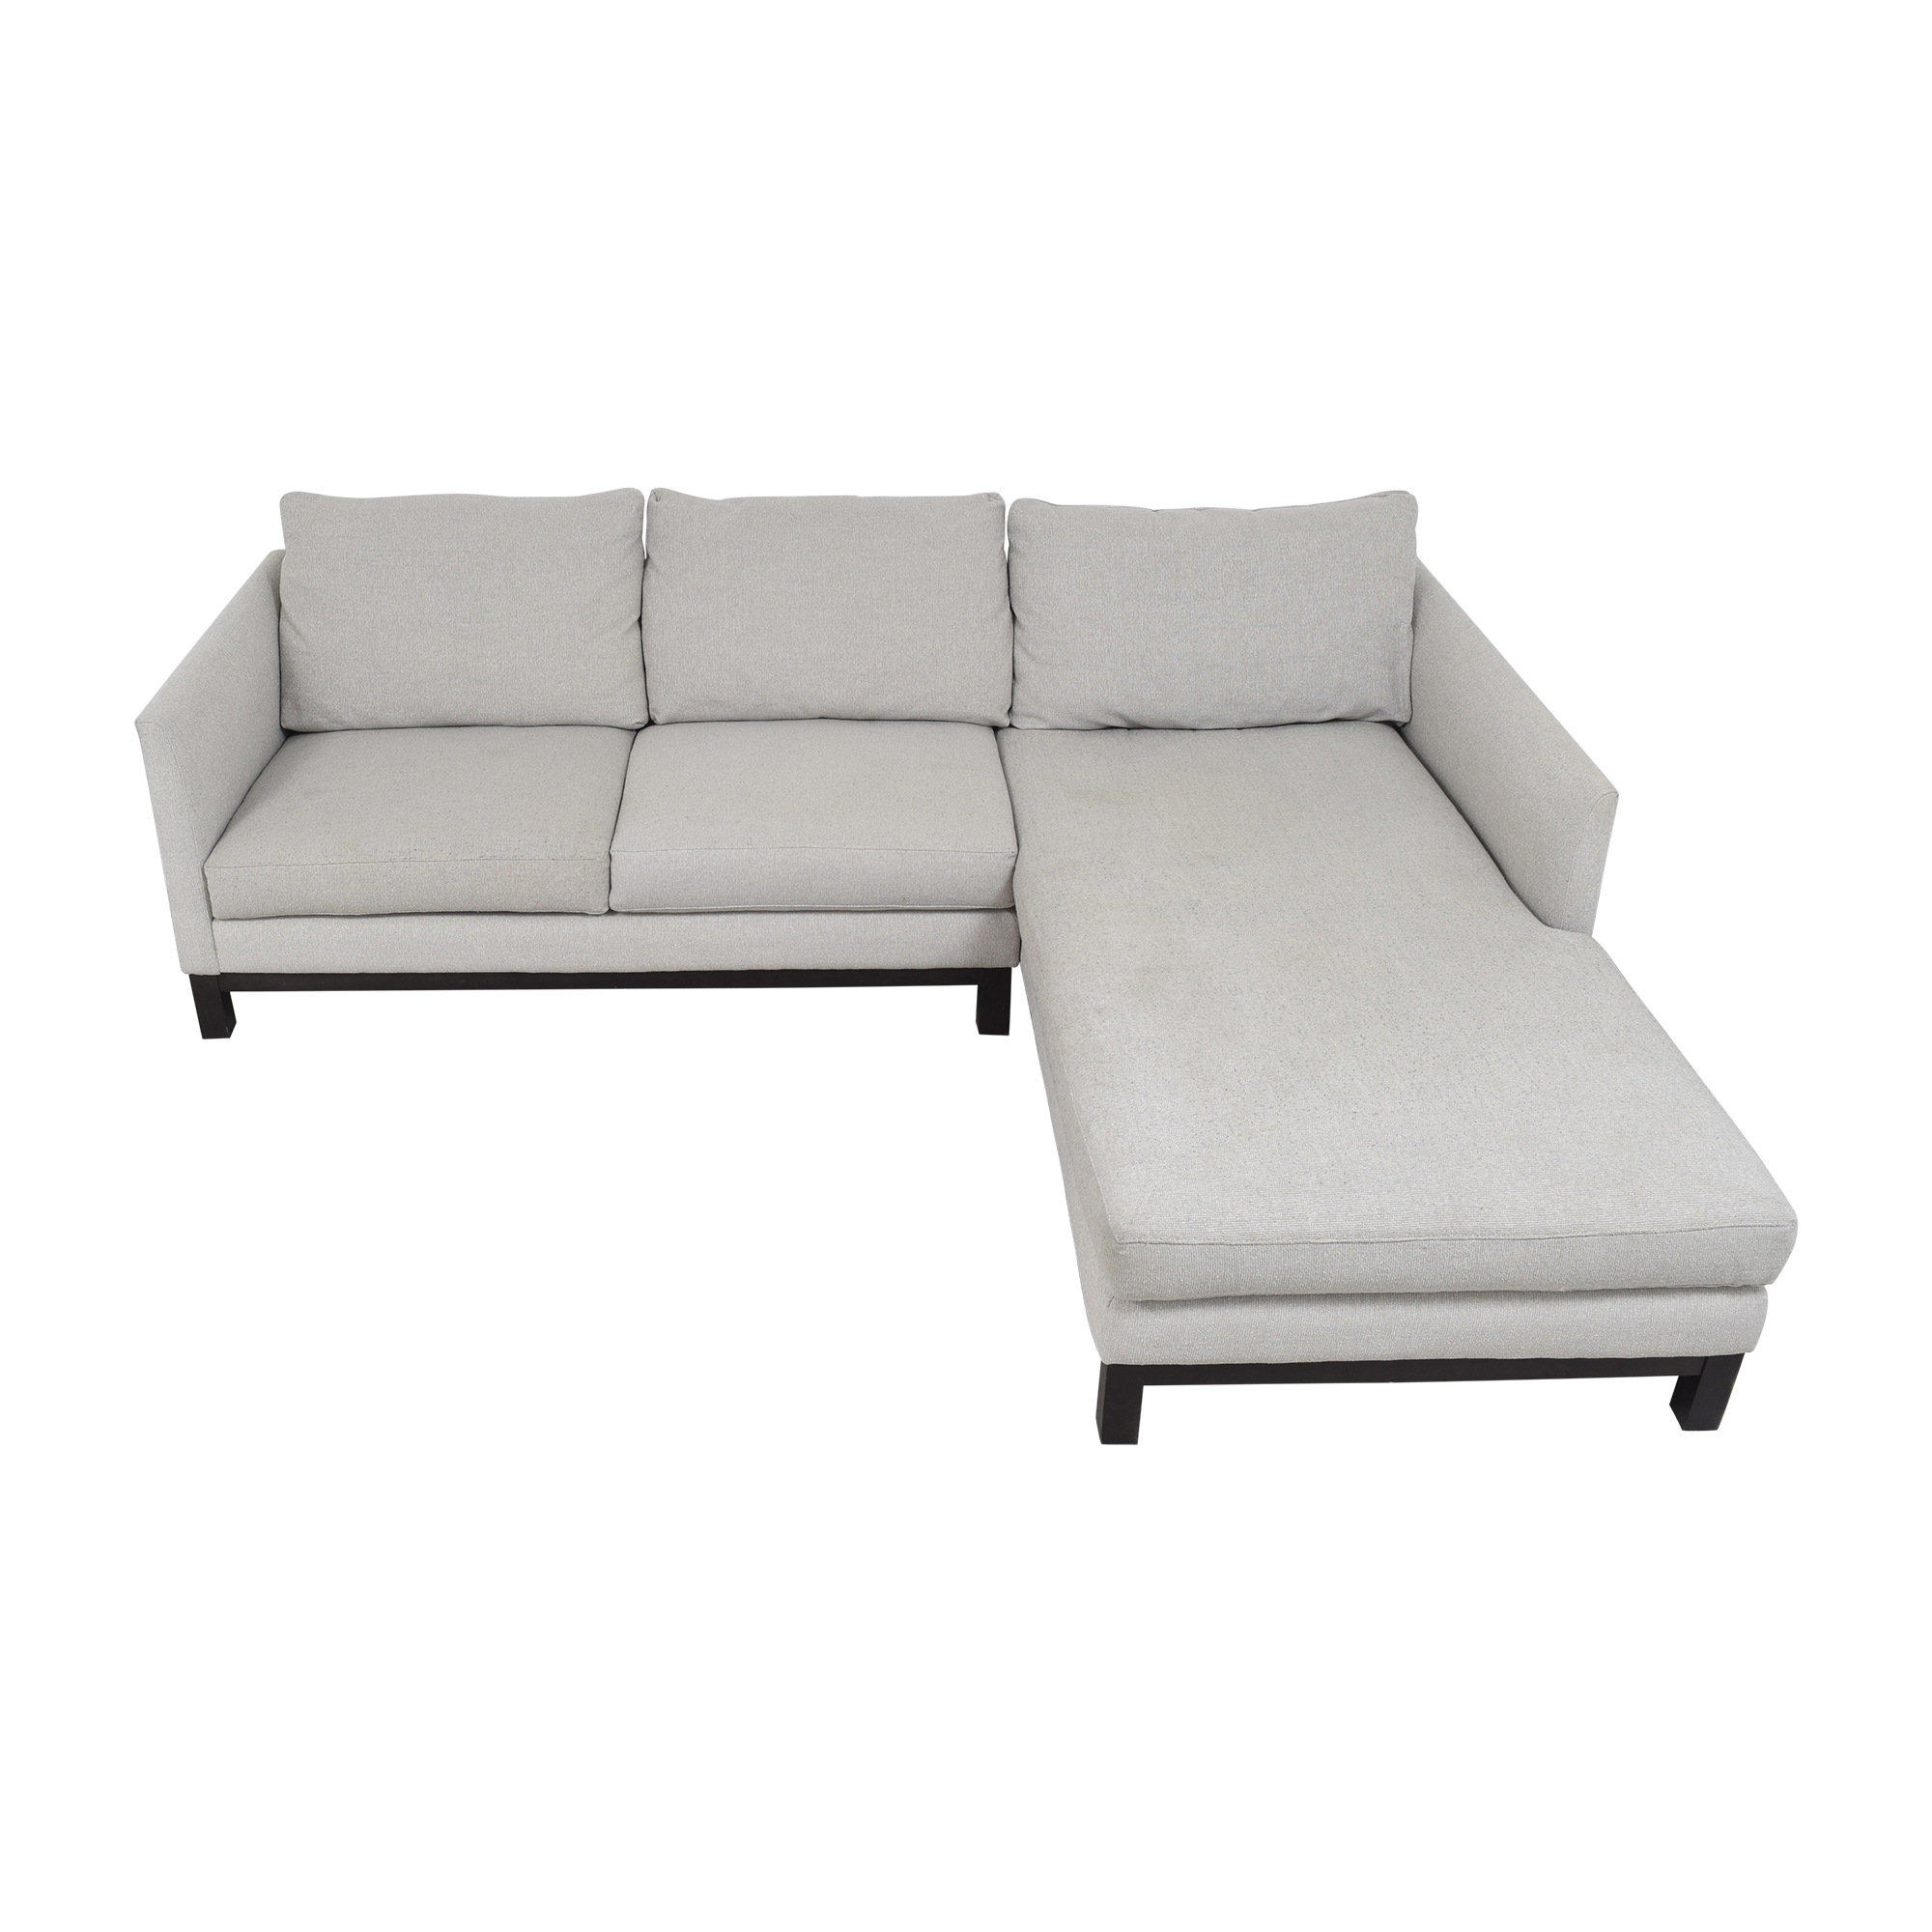 ABC Carpet & Home Cobble Hill Prescott Sectional sale